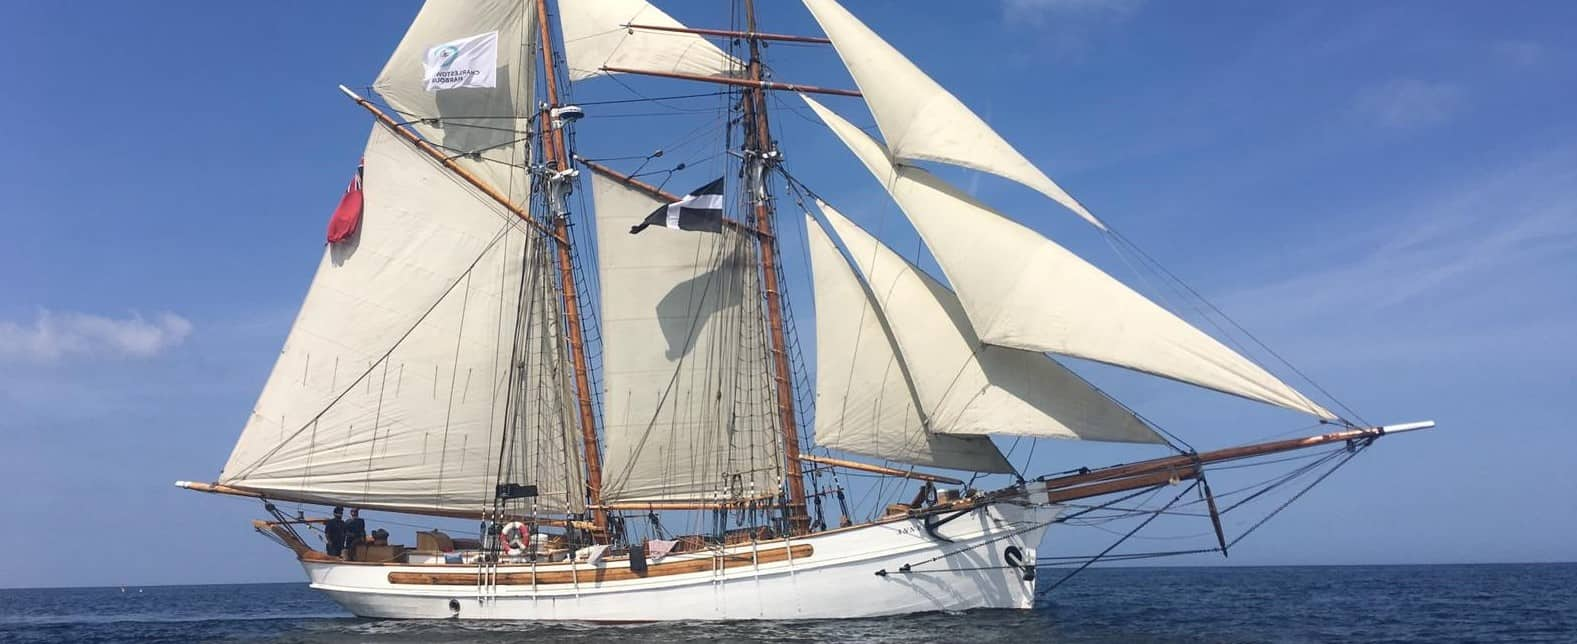 Anny of Charlestown is coming to Falmouth classics